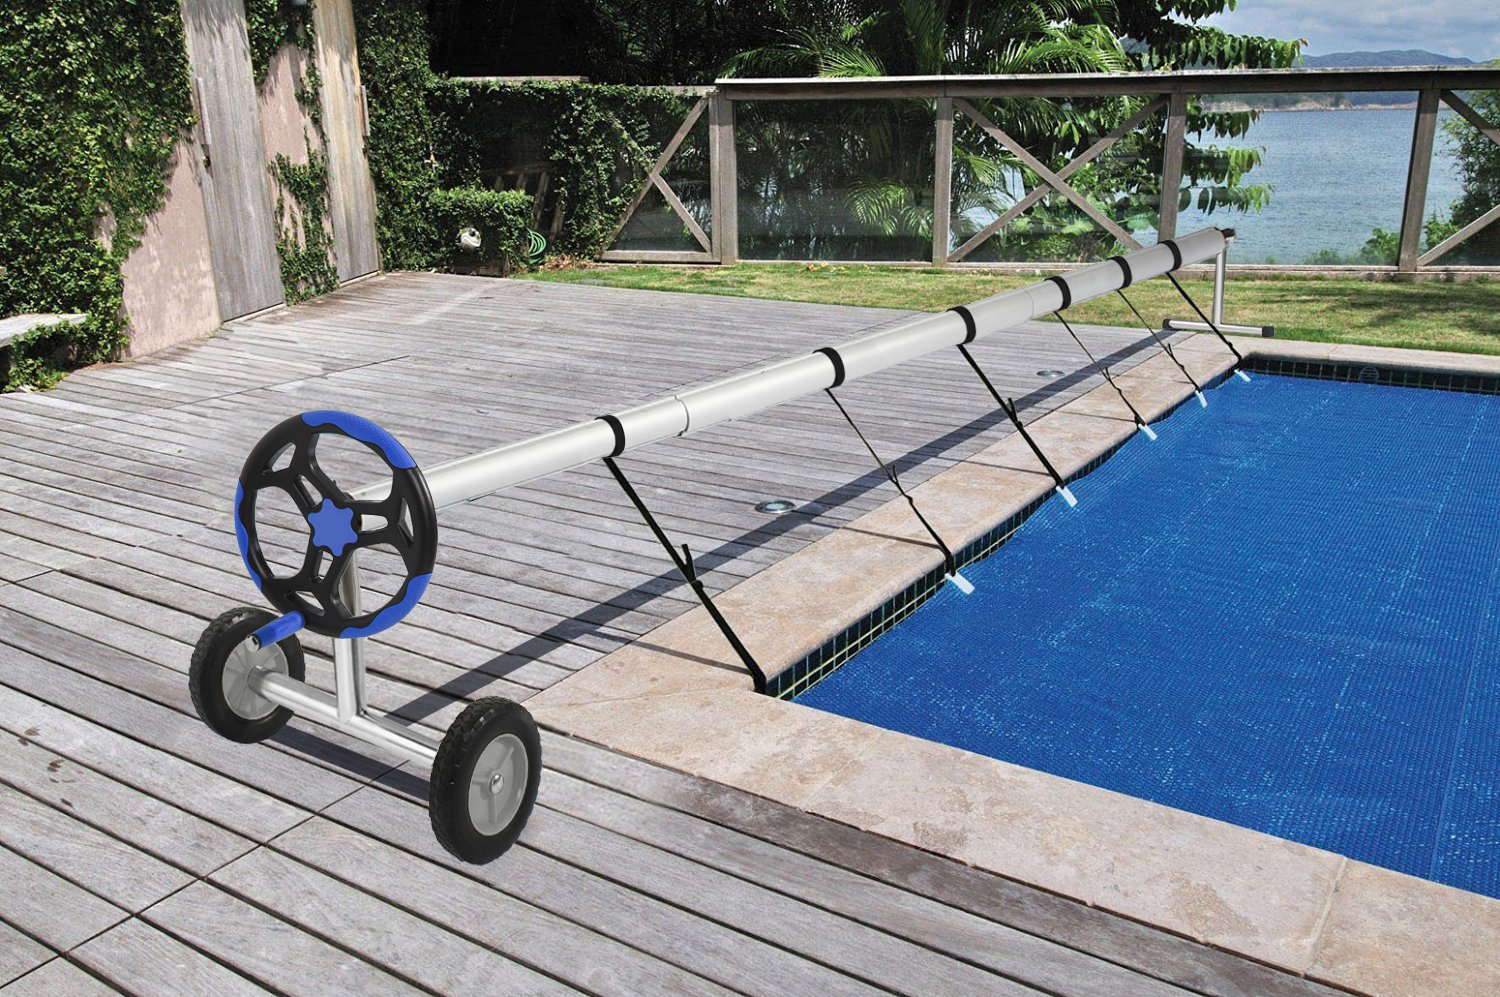 Details about Stainless Steel Solar Cover Reel For Swimming Pools Up To 18  Feet Wide Inground